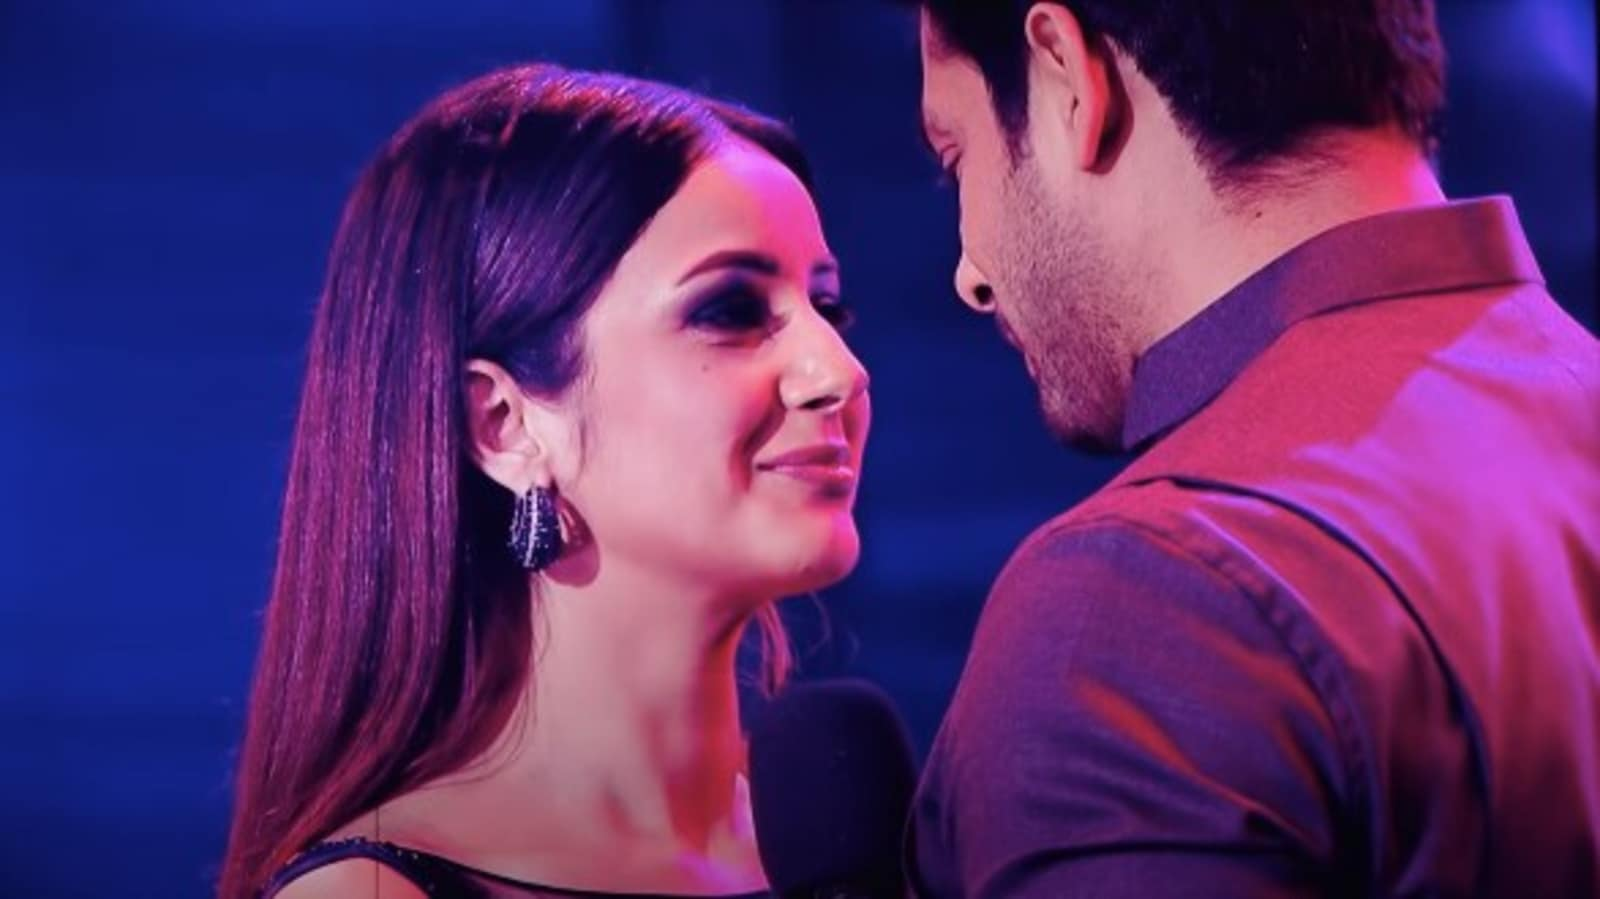 Sidharth Shukla and Shehnaaz Gill's last dance together leaves Sidnaaz fans heartbroken. Watch here